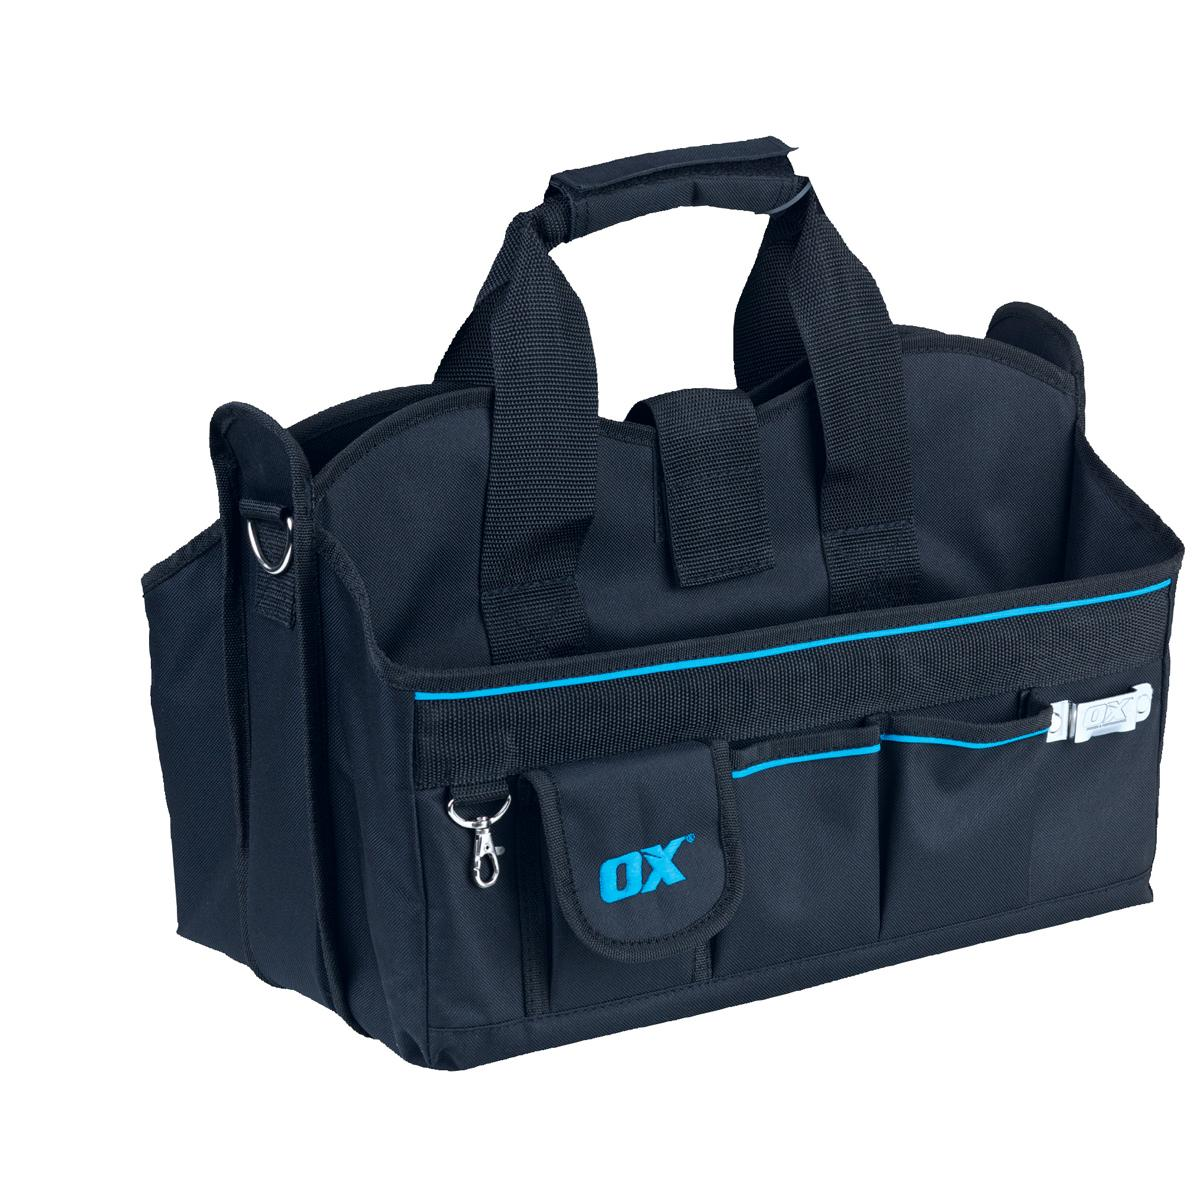 OX Prof Lrg Open Mouth Toolbag 43x28x30c